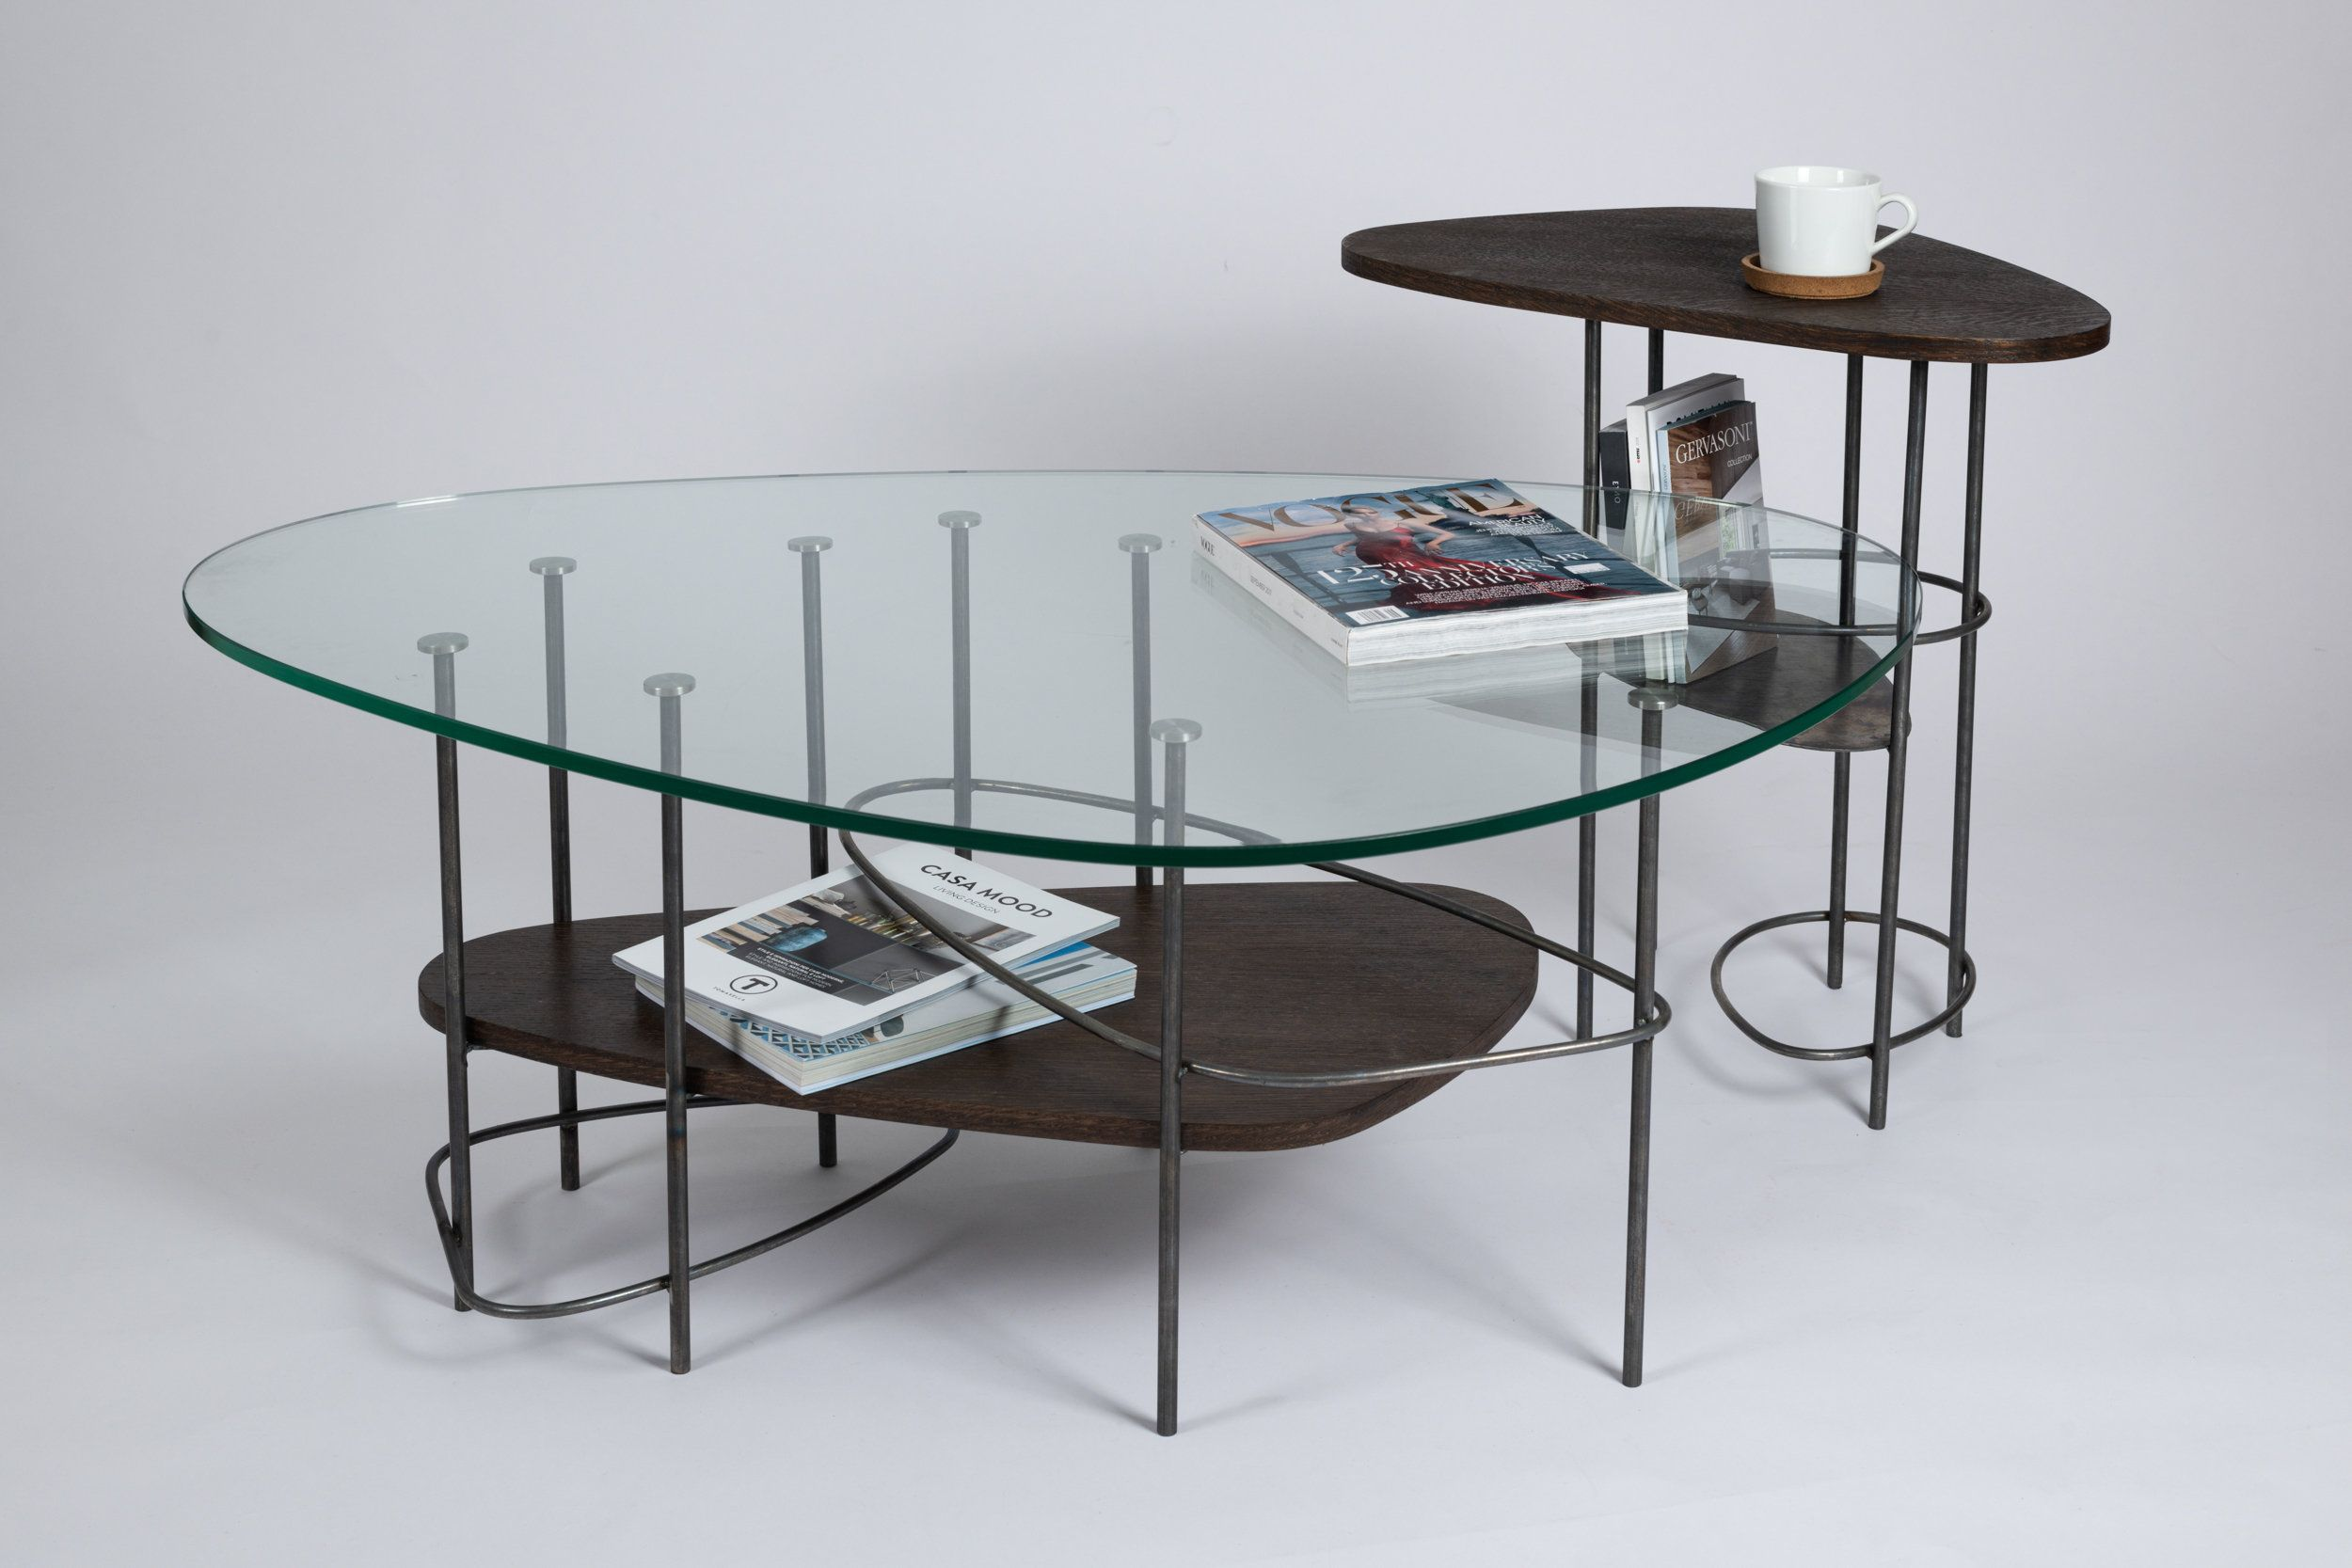 Glass Coffee Table Glass Metal And Wood Coffee Table Unique Designer Coffee Table Bigcoffeetable Conte Coffee Table Coffee Table Wood Glass Coffee Table [ 1667 x 2500 Pixel ]